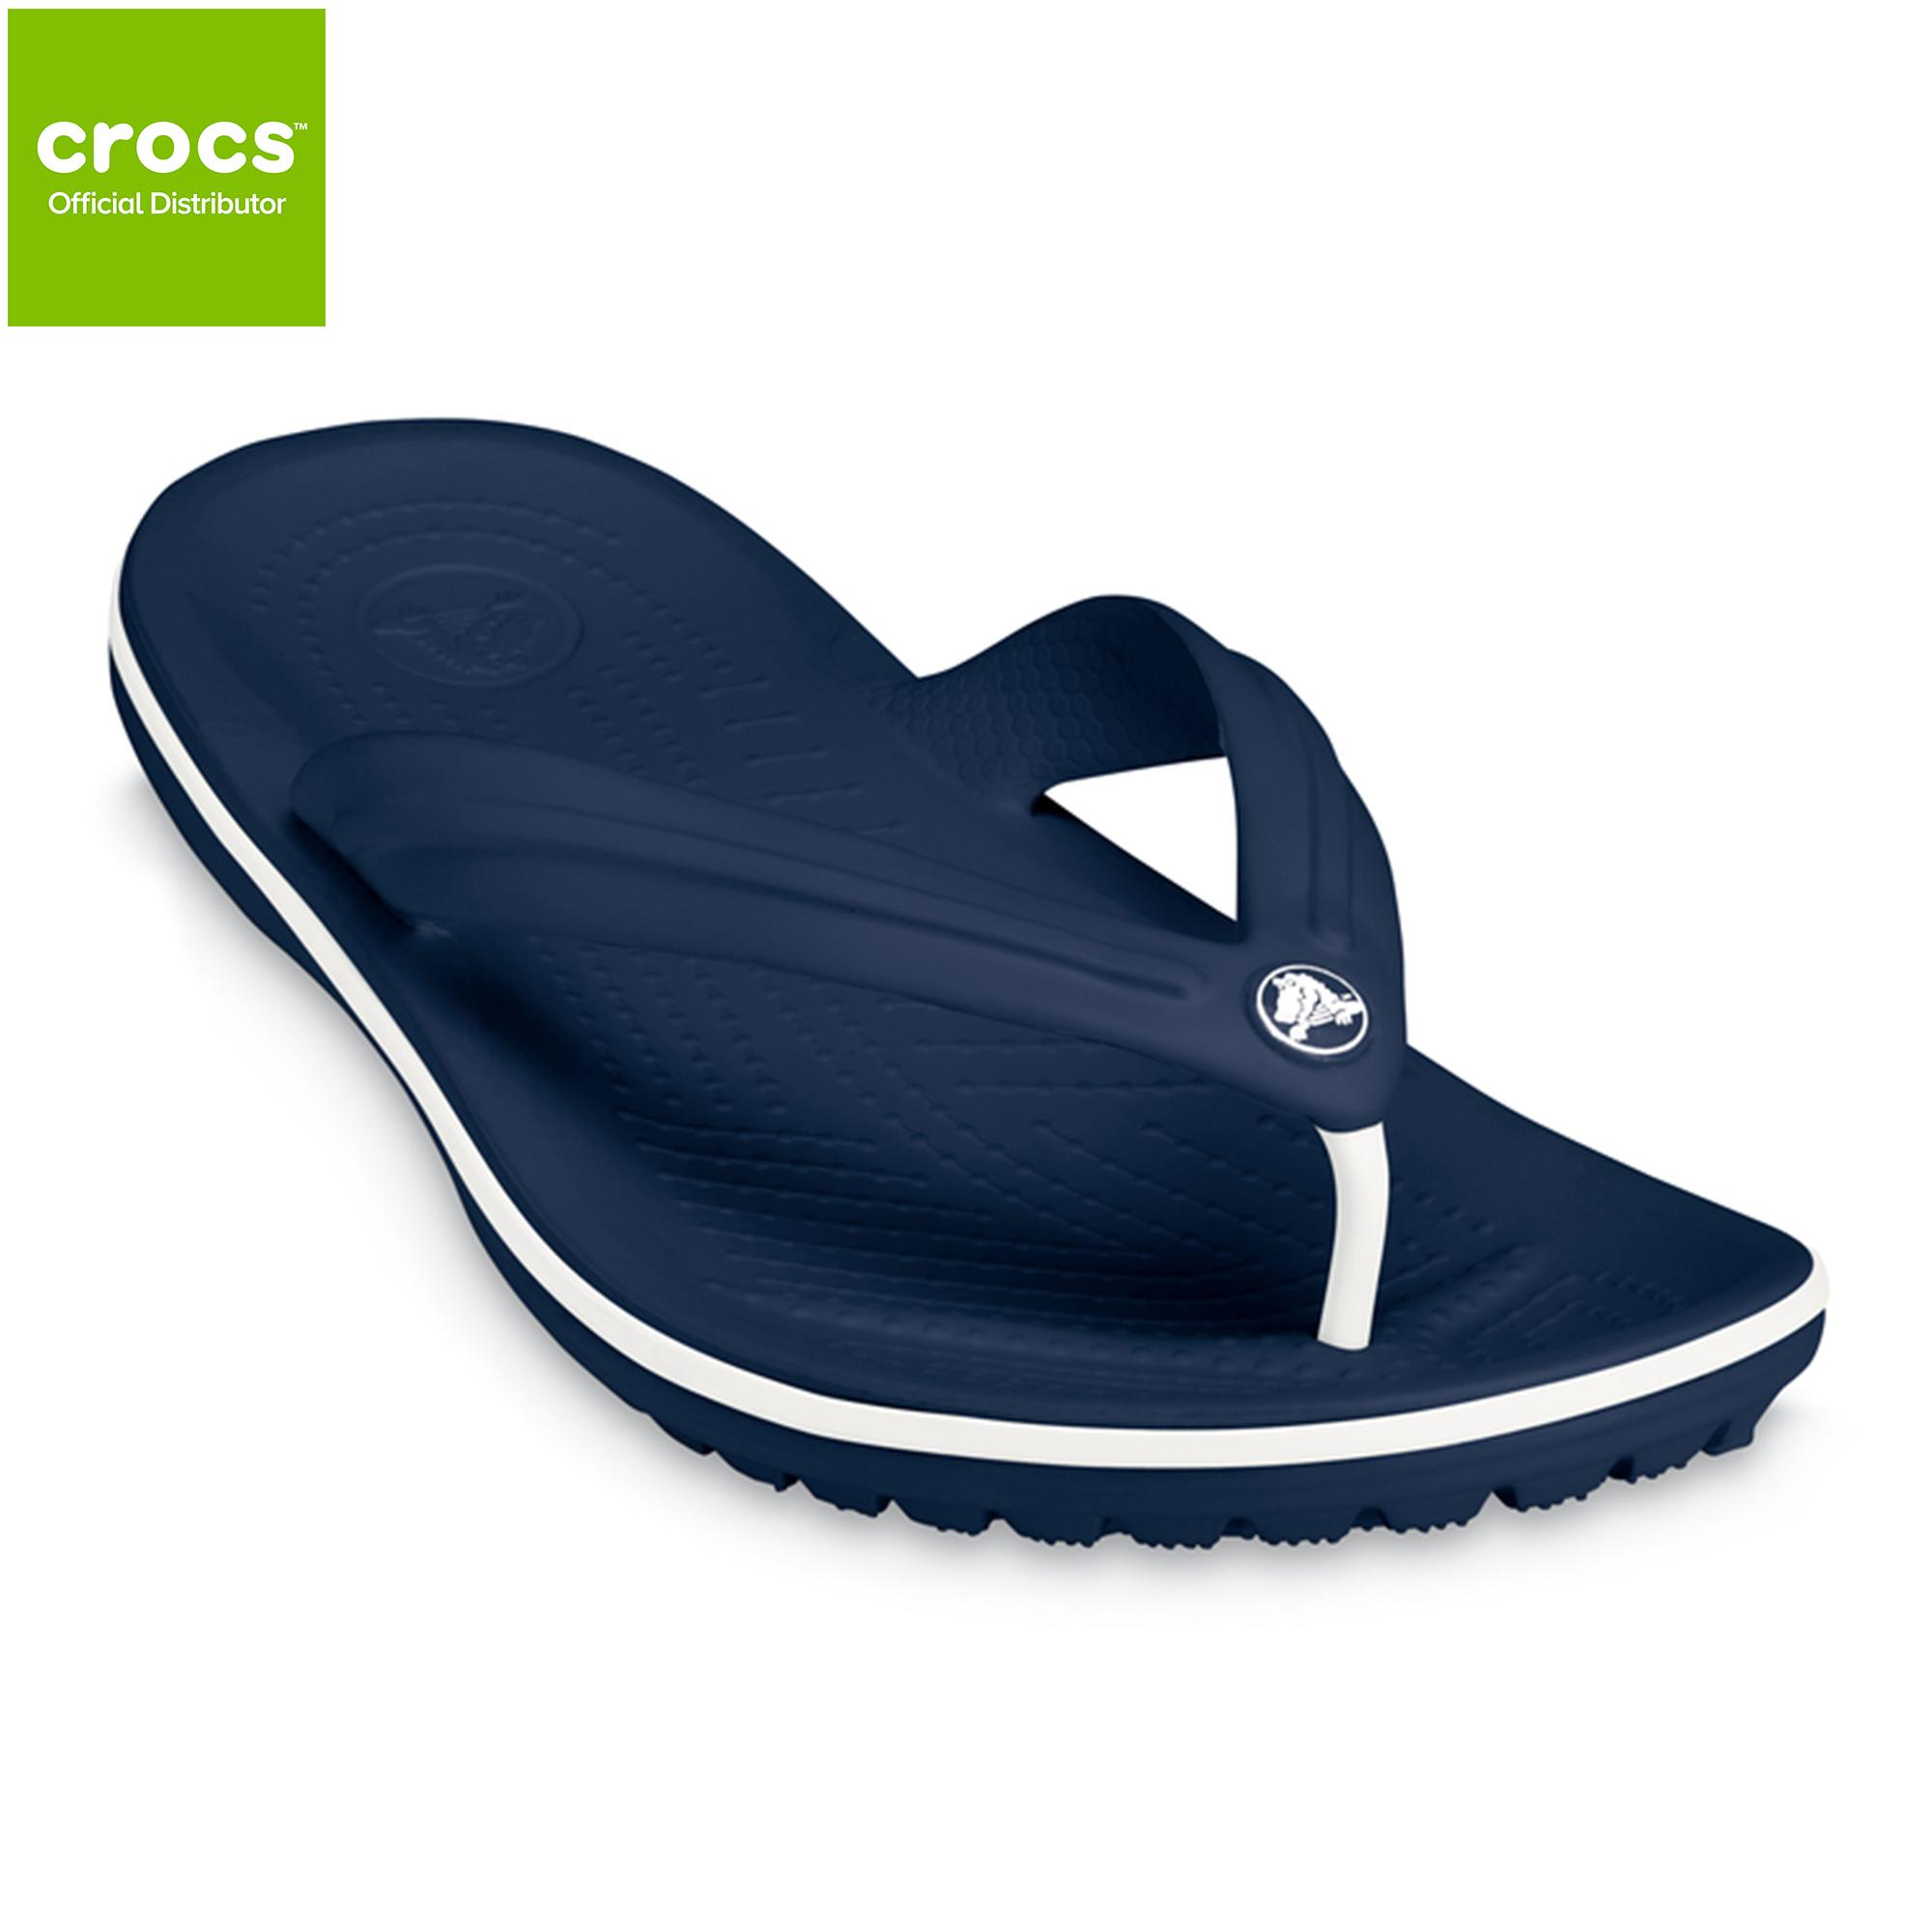 0a0fe5175 Crocs Philippines  Crocs price list - Crocs Flats